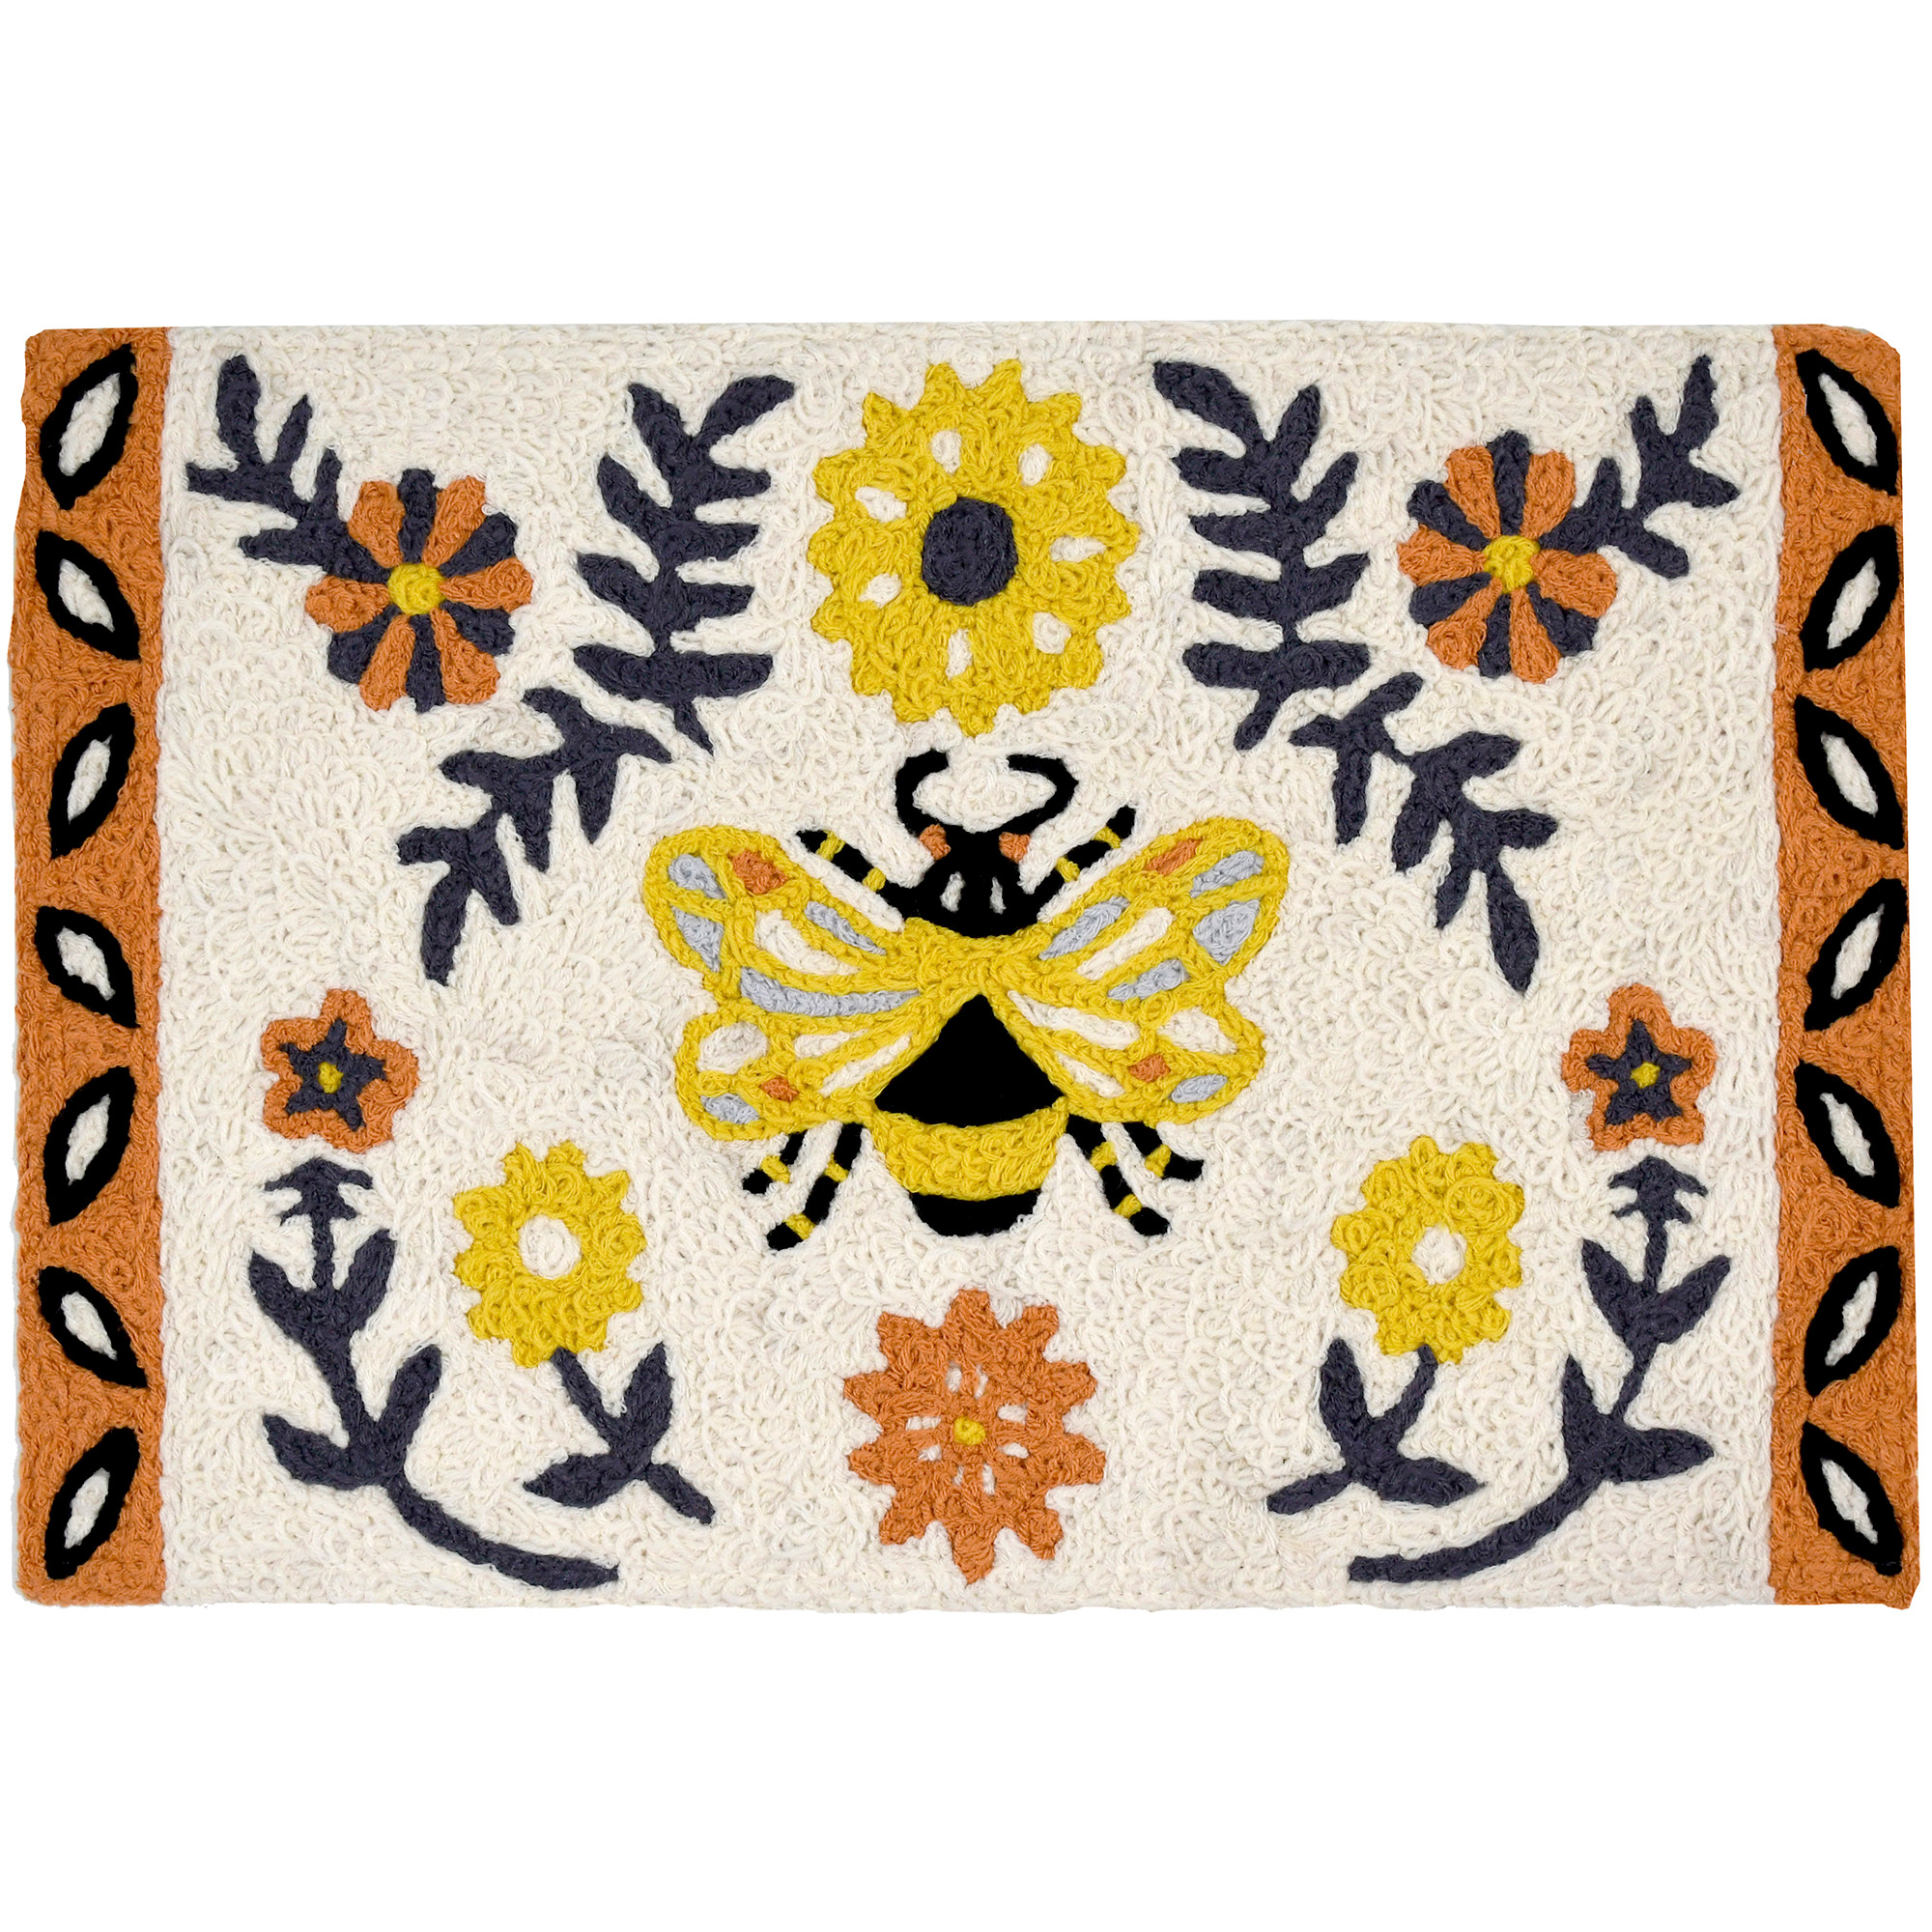 A yellow bee takes center on this soft hued Jellybean® accent rug. Surrounded by blooms and decorative geometric edging this delightful, machine washable rug, will brighten the space of your choosing. This polyester rug is suitable for outdoor and indoor use.